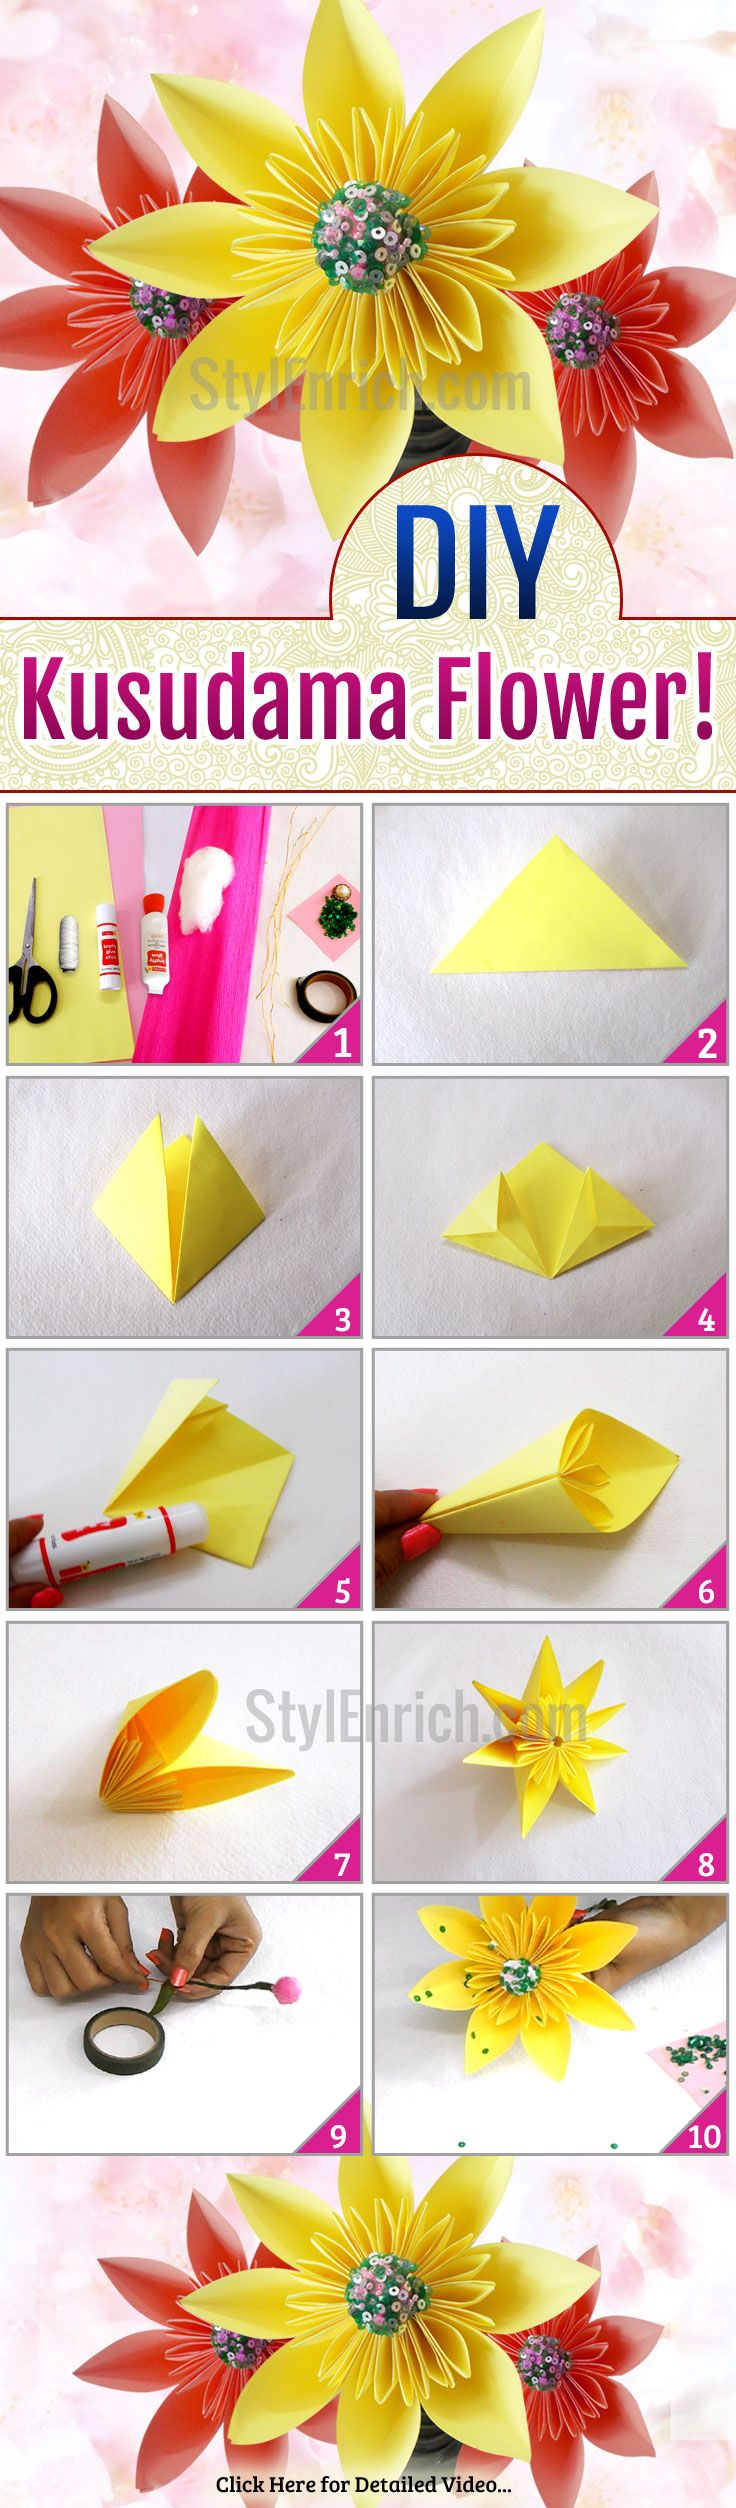 Want To Know How To Make Beautiful Super Easy Diypaperflowers